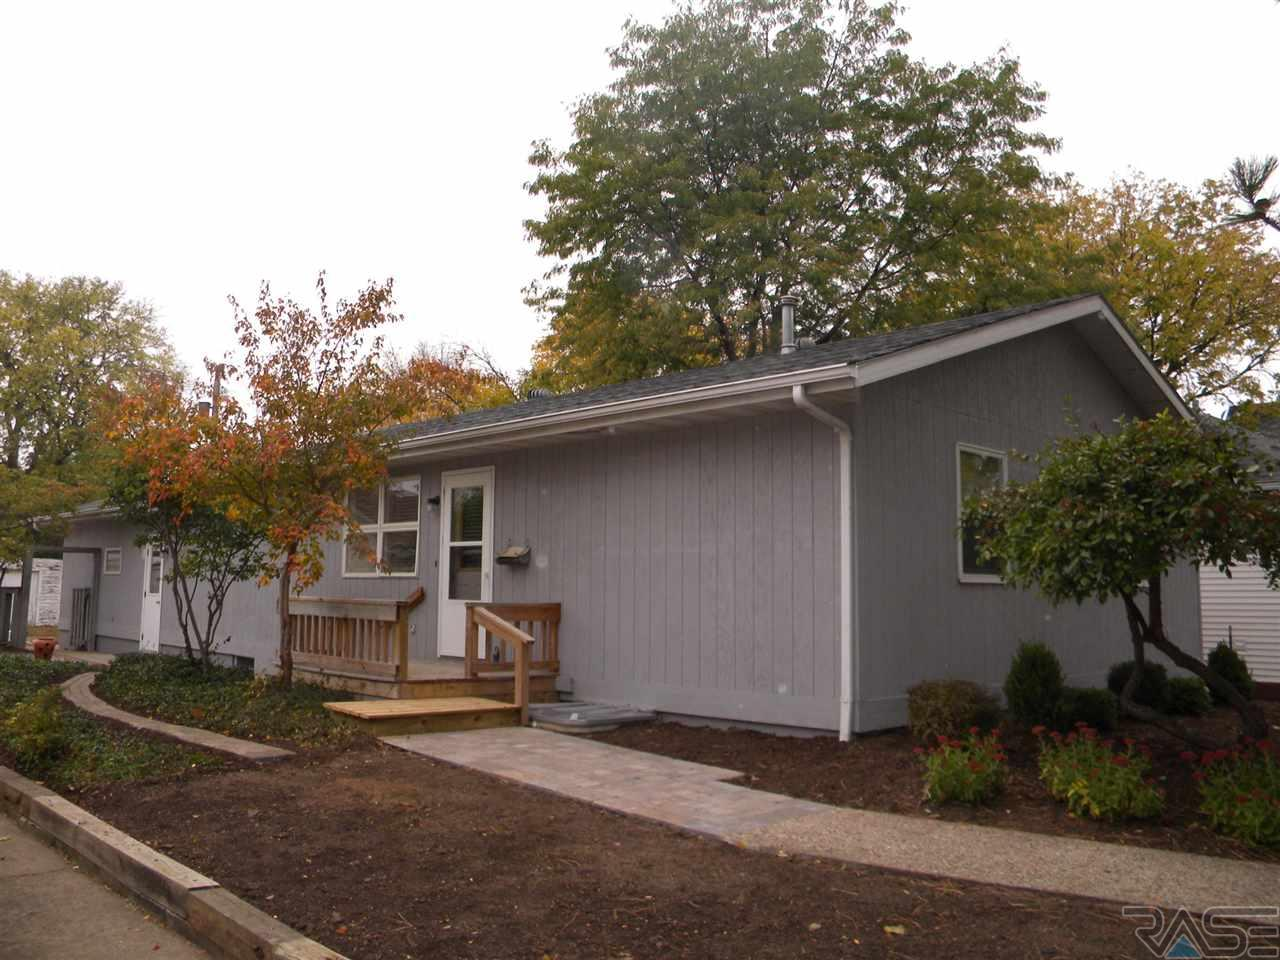 213 N Lee Ave, Madison, SD 57042